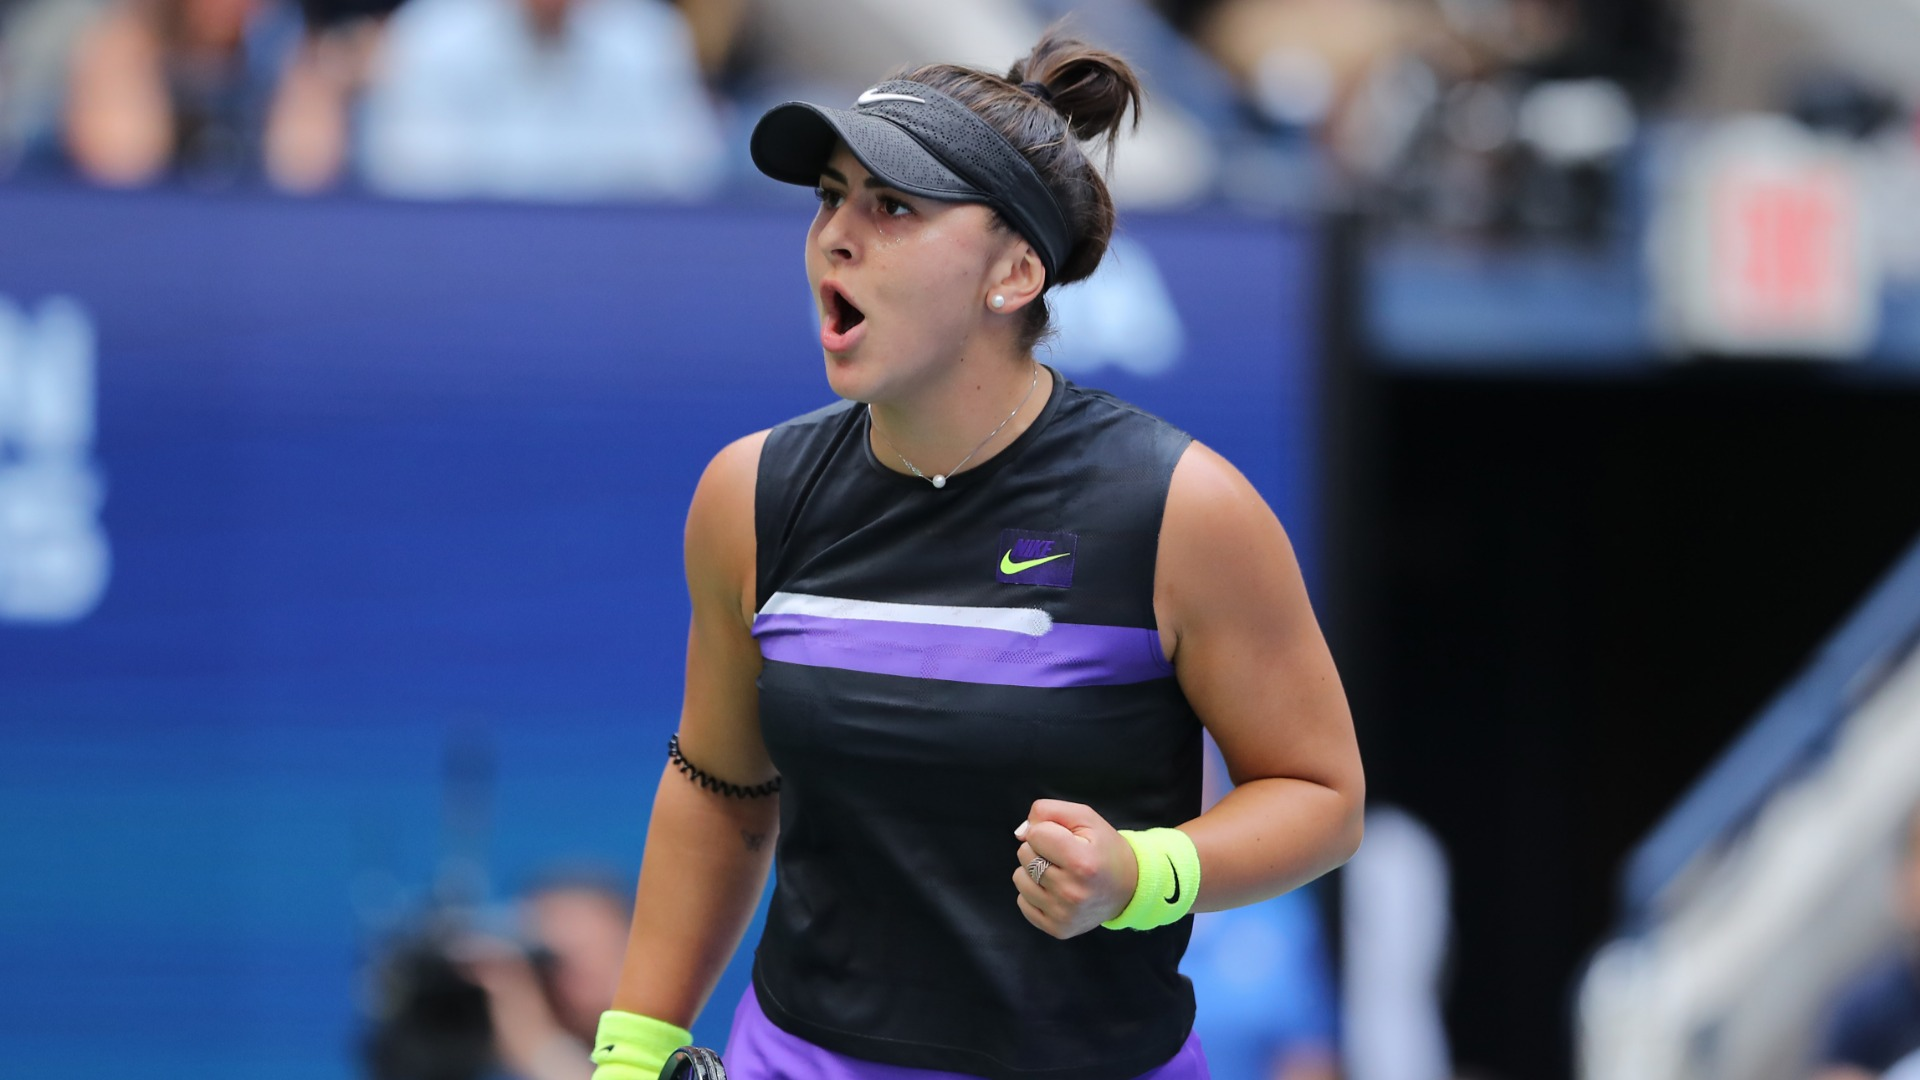 Injured Andreescu to miss Tokyo Open